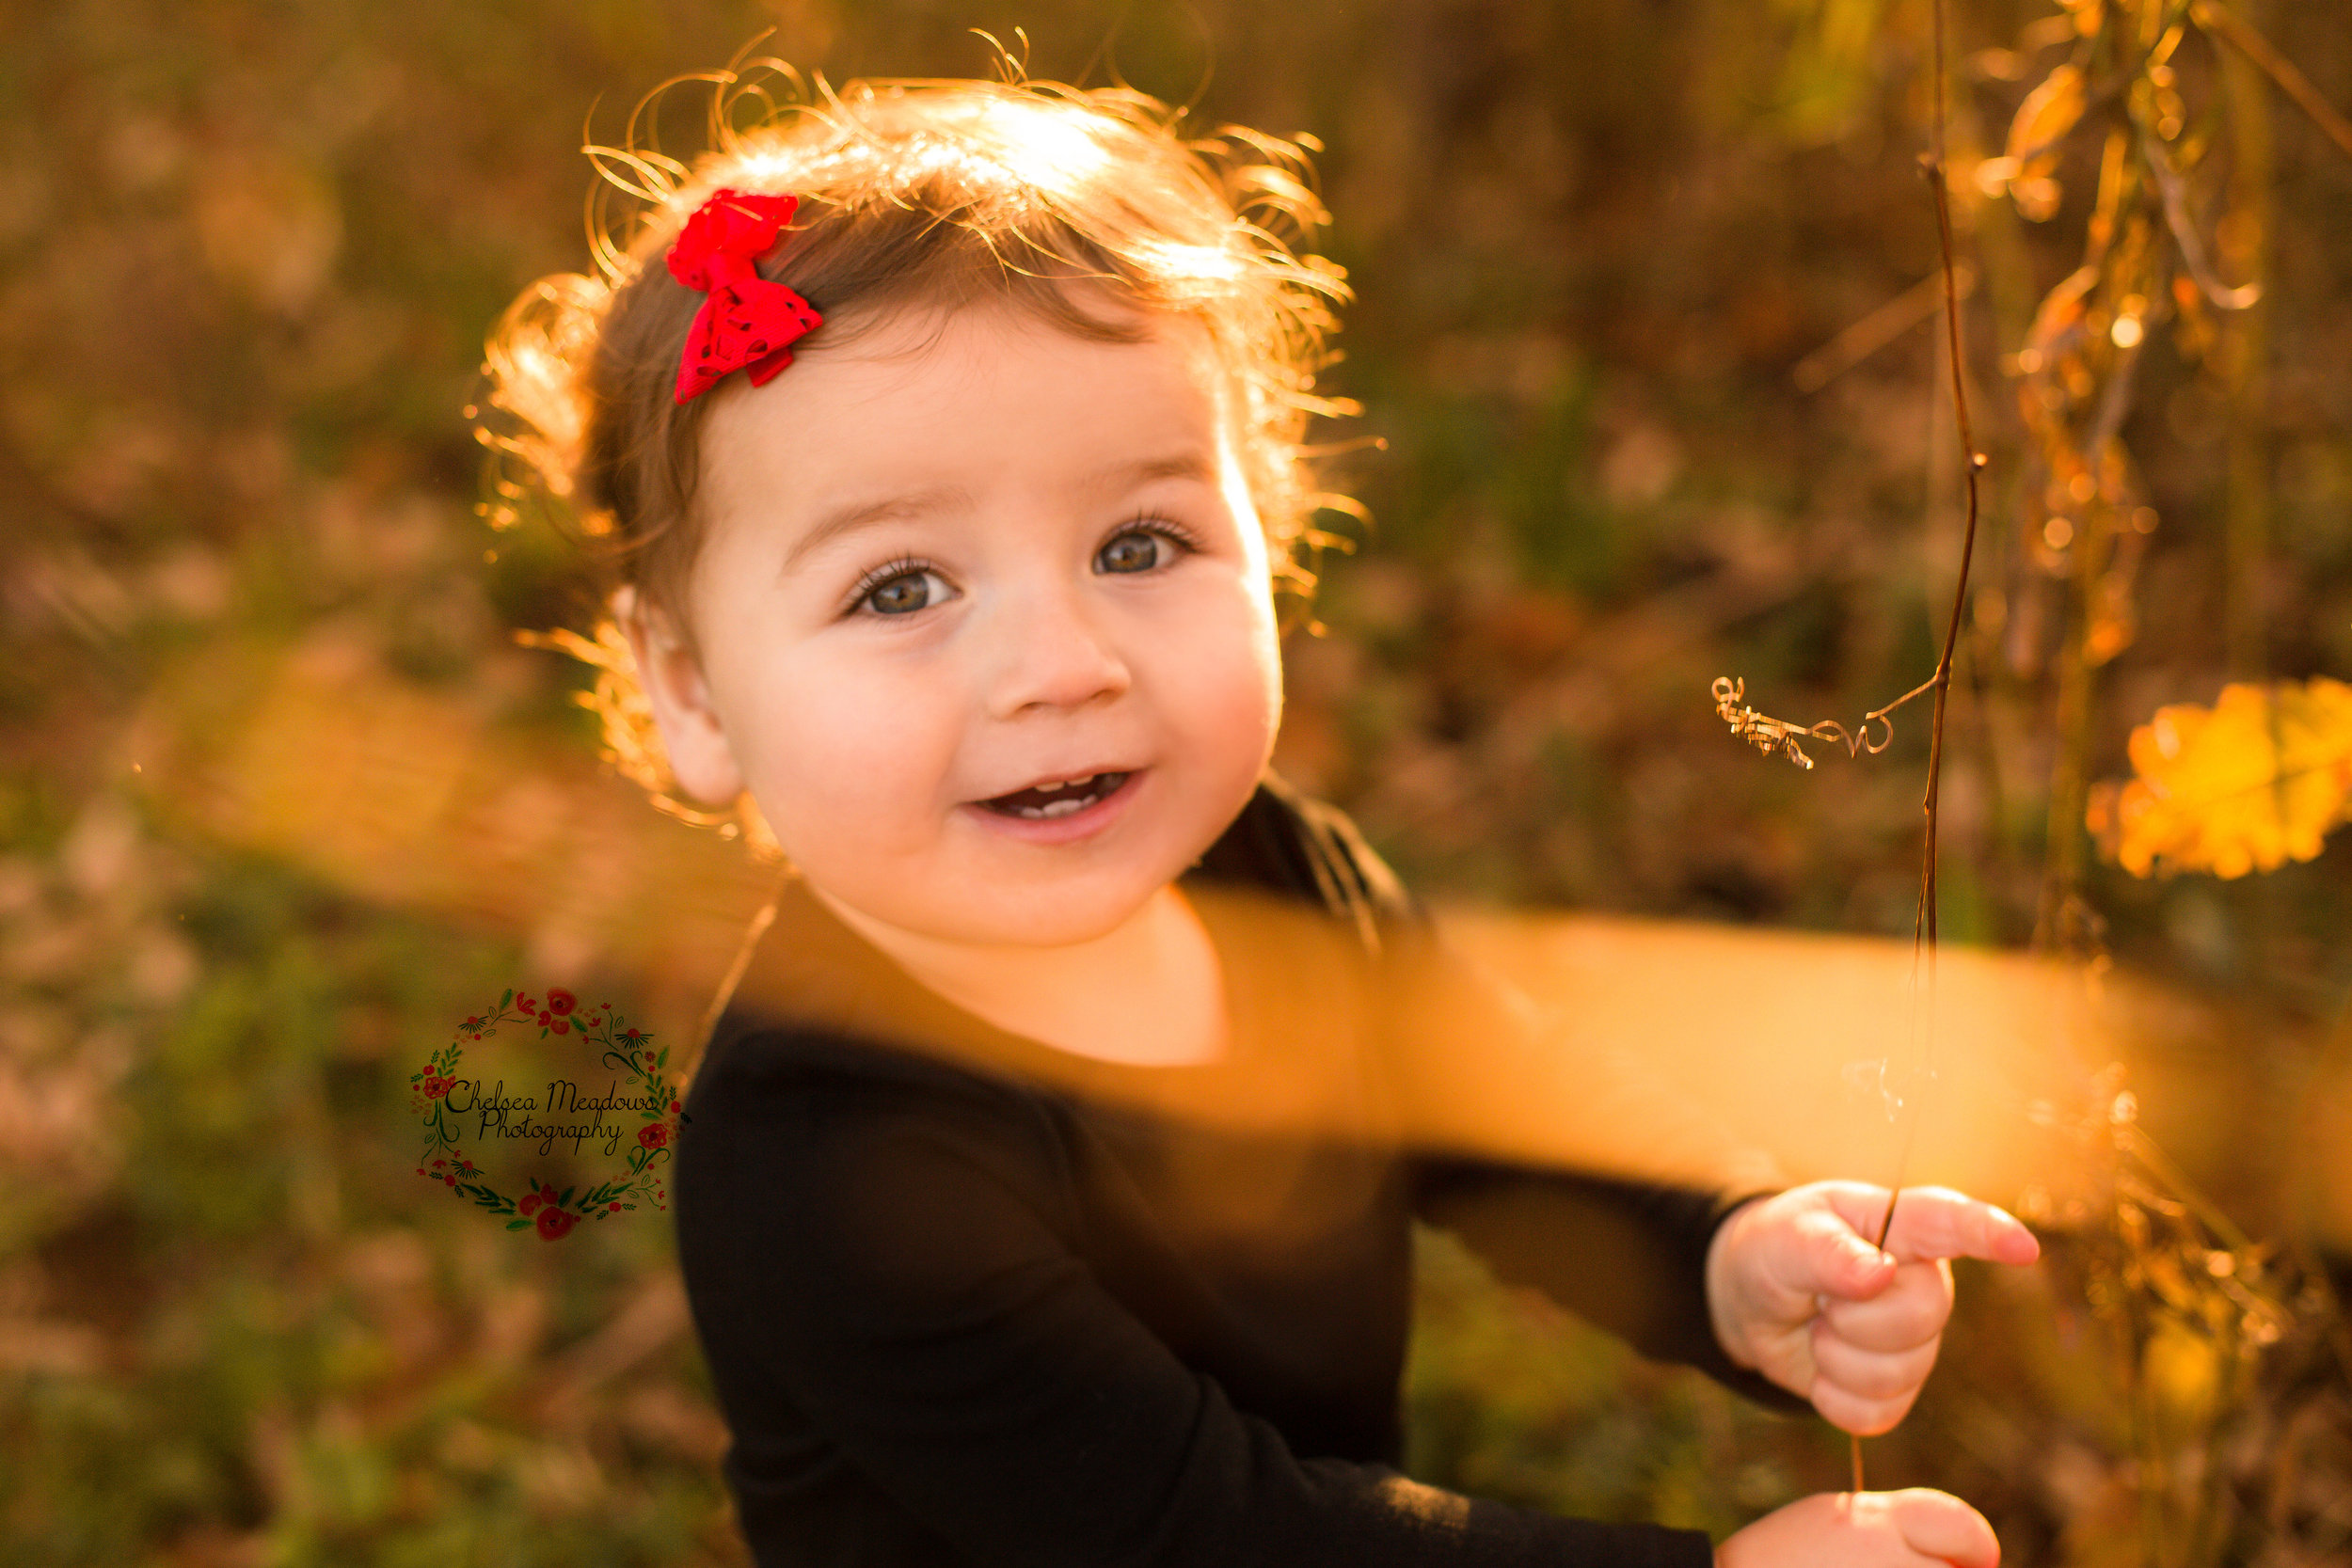 Smith Family Christmas Photos - Nashville Family Photographer - Chelsea Meadows Photography (9).jpg